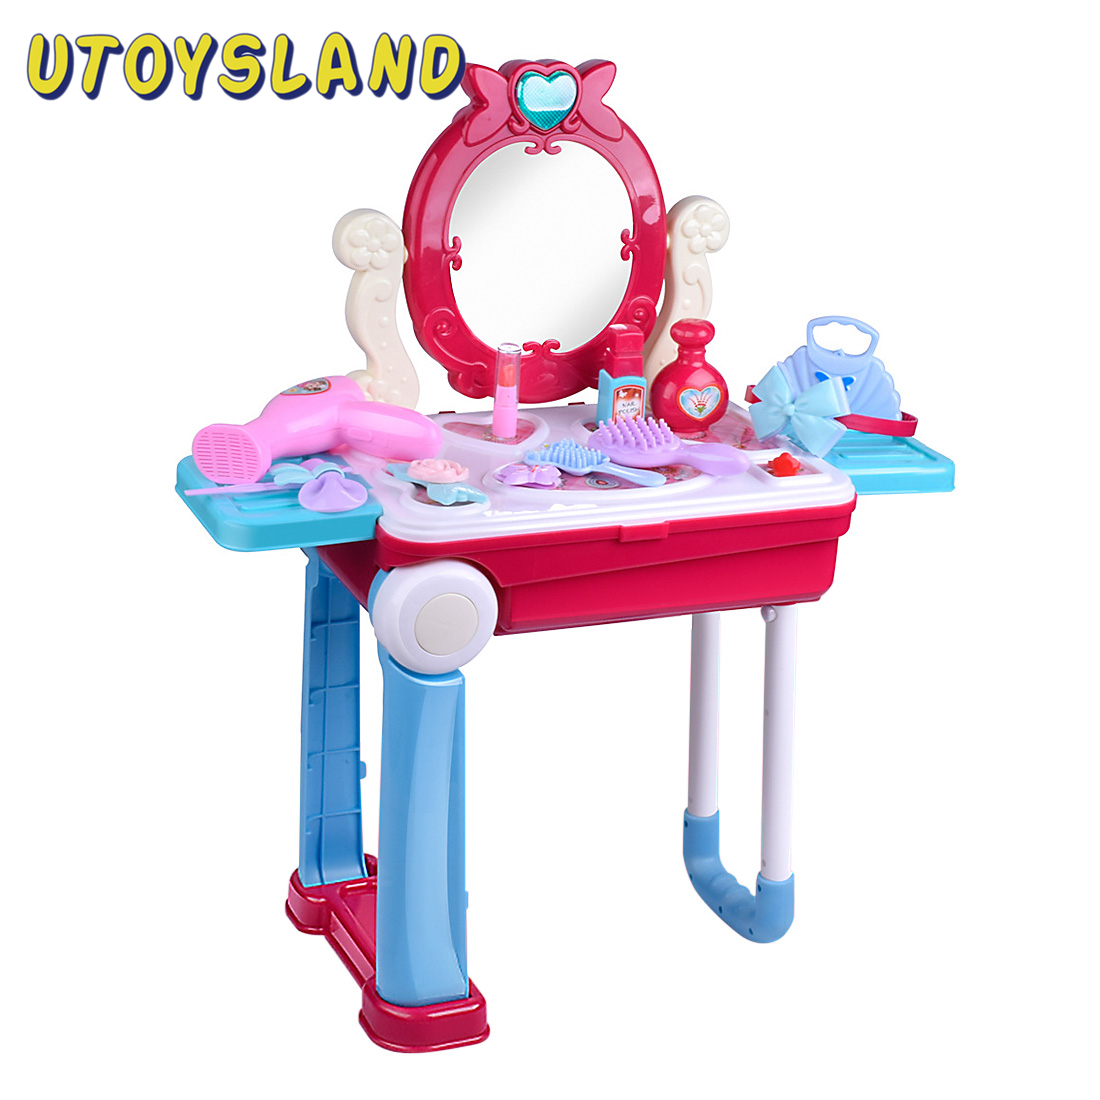 14Pcs Children Makeup Pretend Playset Dressing Table Suitcase Toys With Light And Sound Beauty Pretend Play Toys Birthday Gift